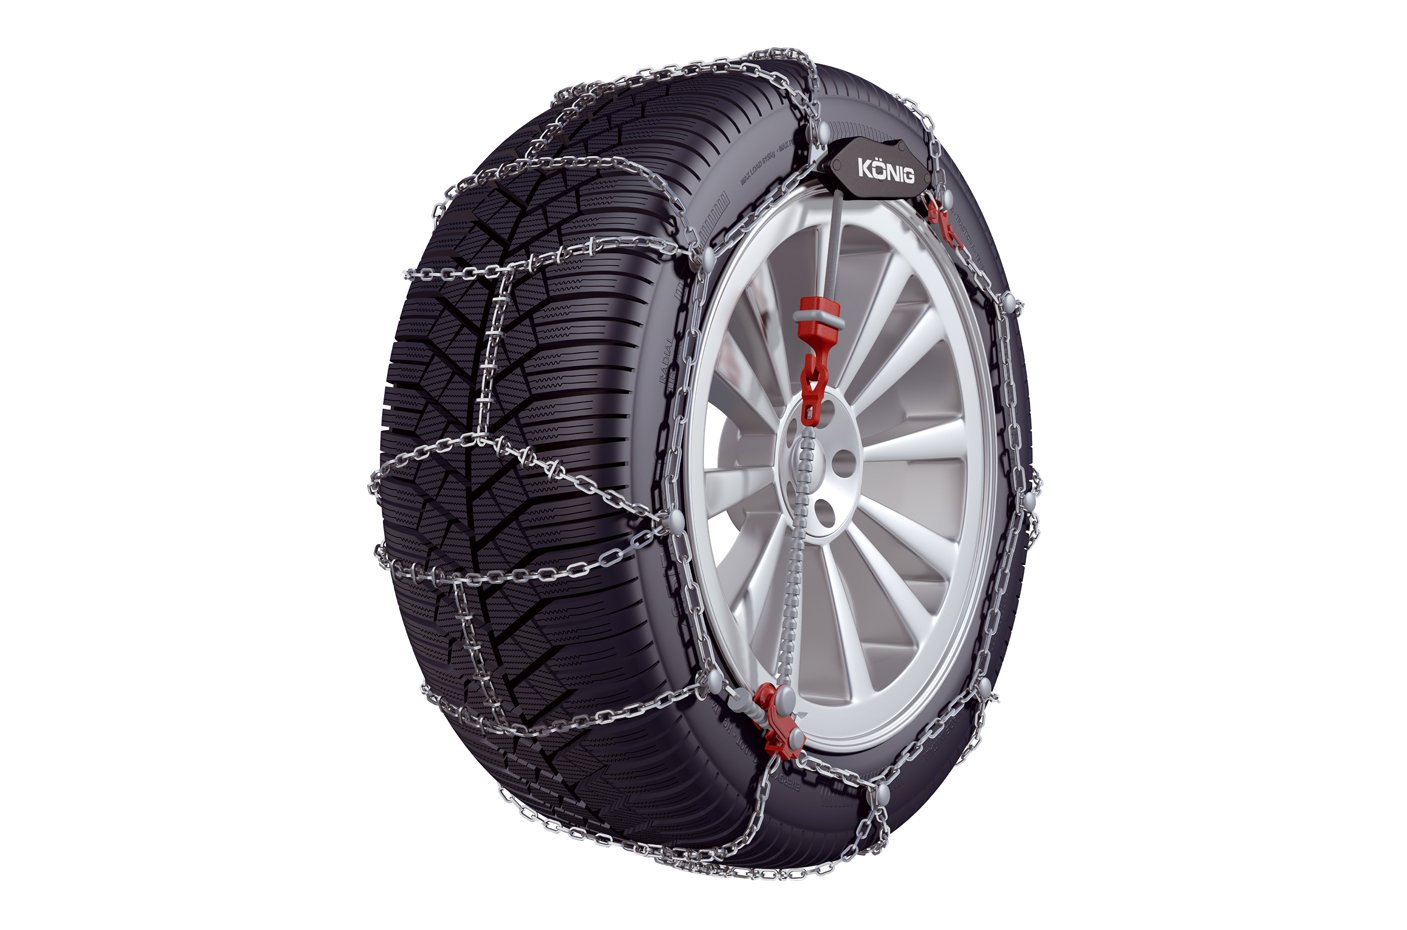 Kö nig CL-10 060 - Snow Chains, 2 Pieces Thule GmbH. 2004255060